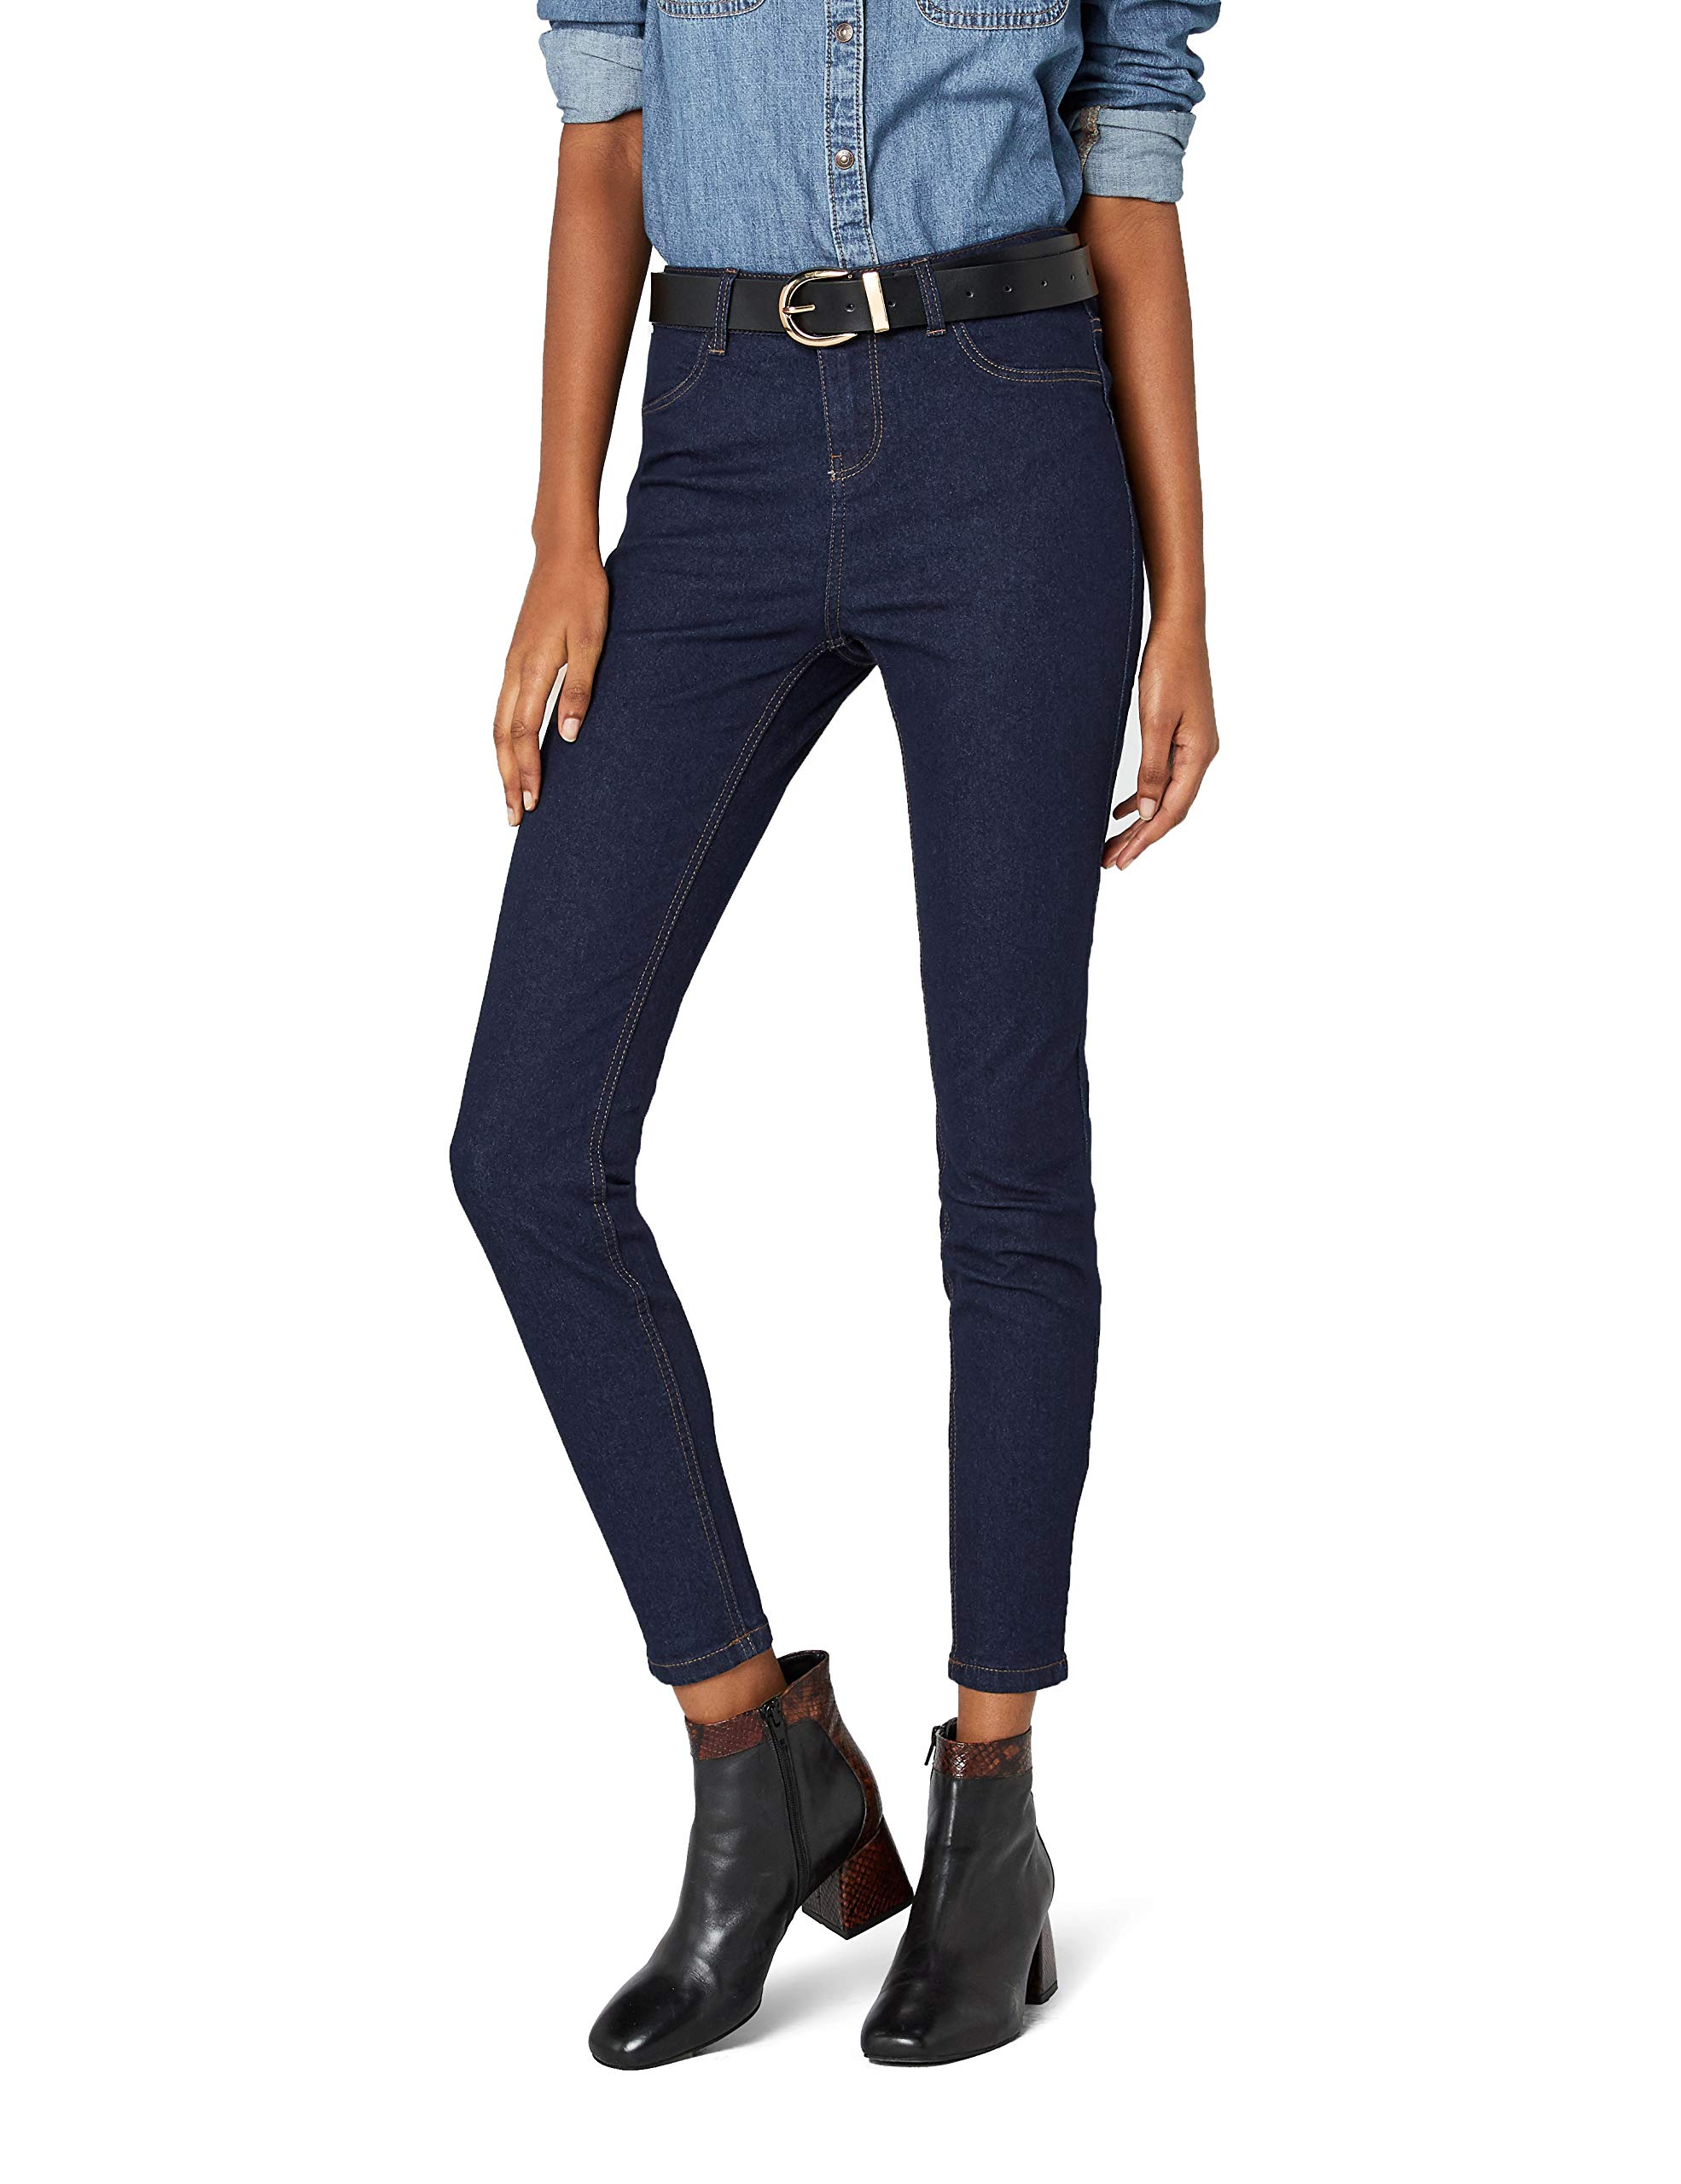 New Look Women's Skinny Jeans 55